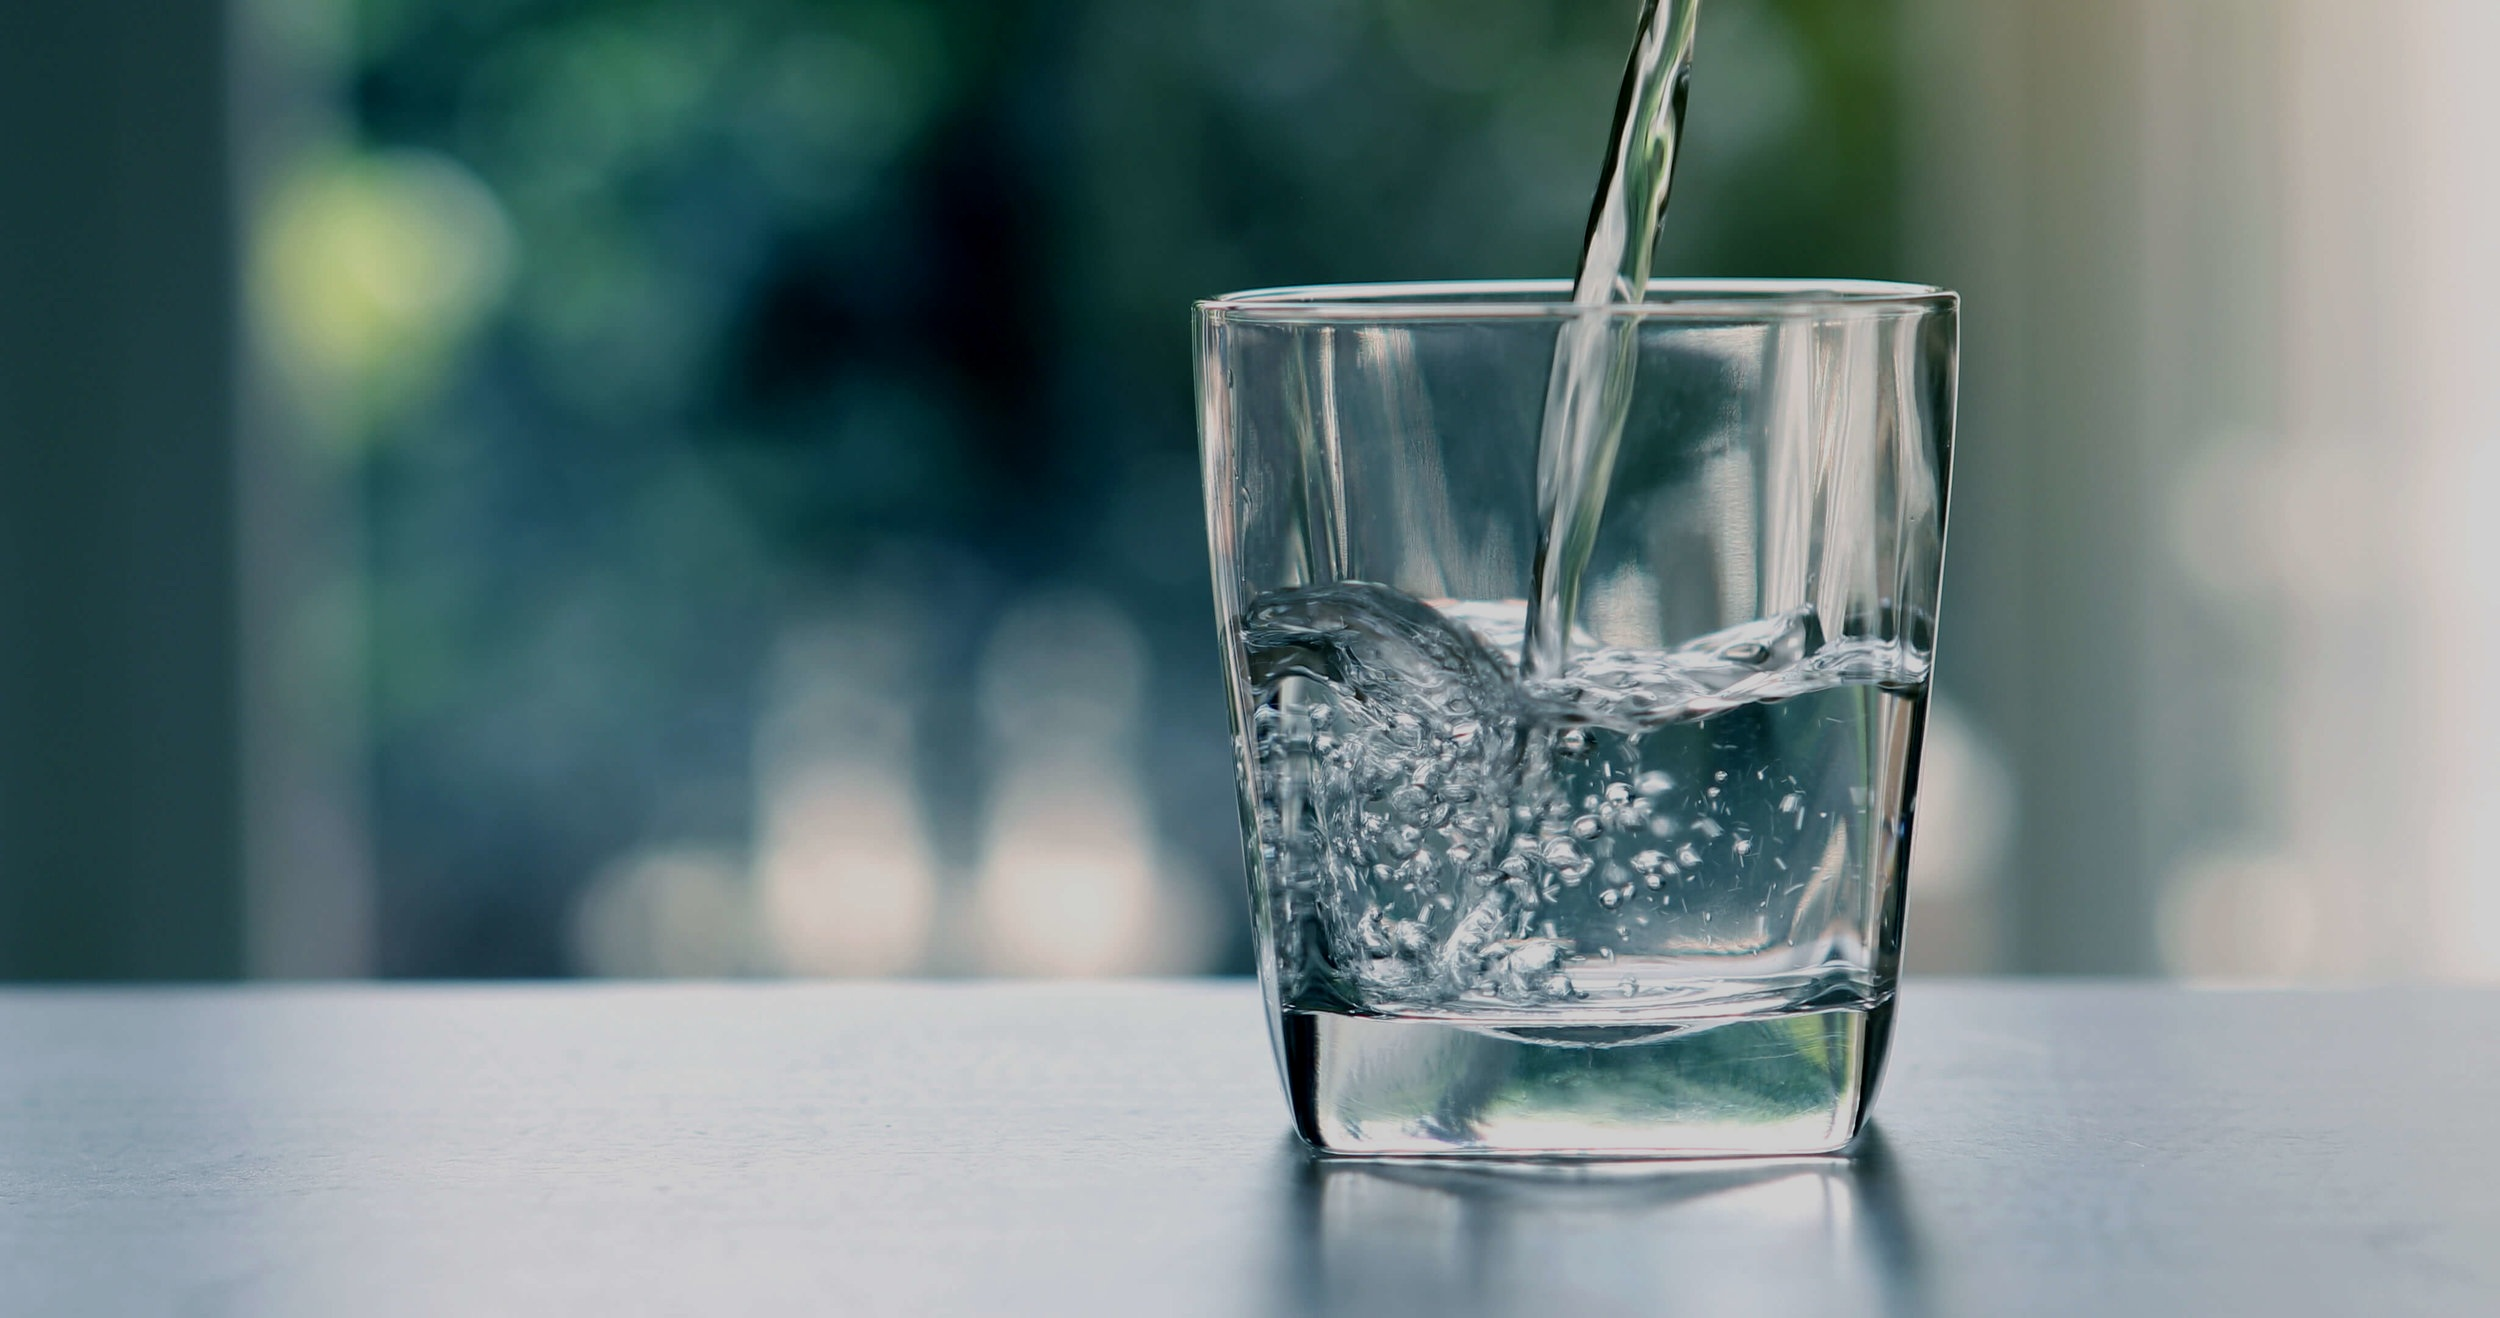 Recycle 12.9 Trillion DollarsWorth of Water -